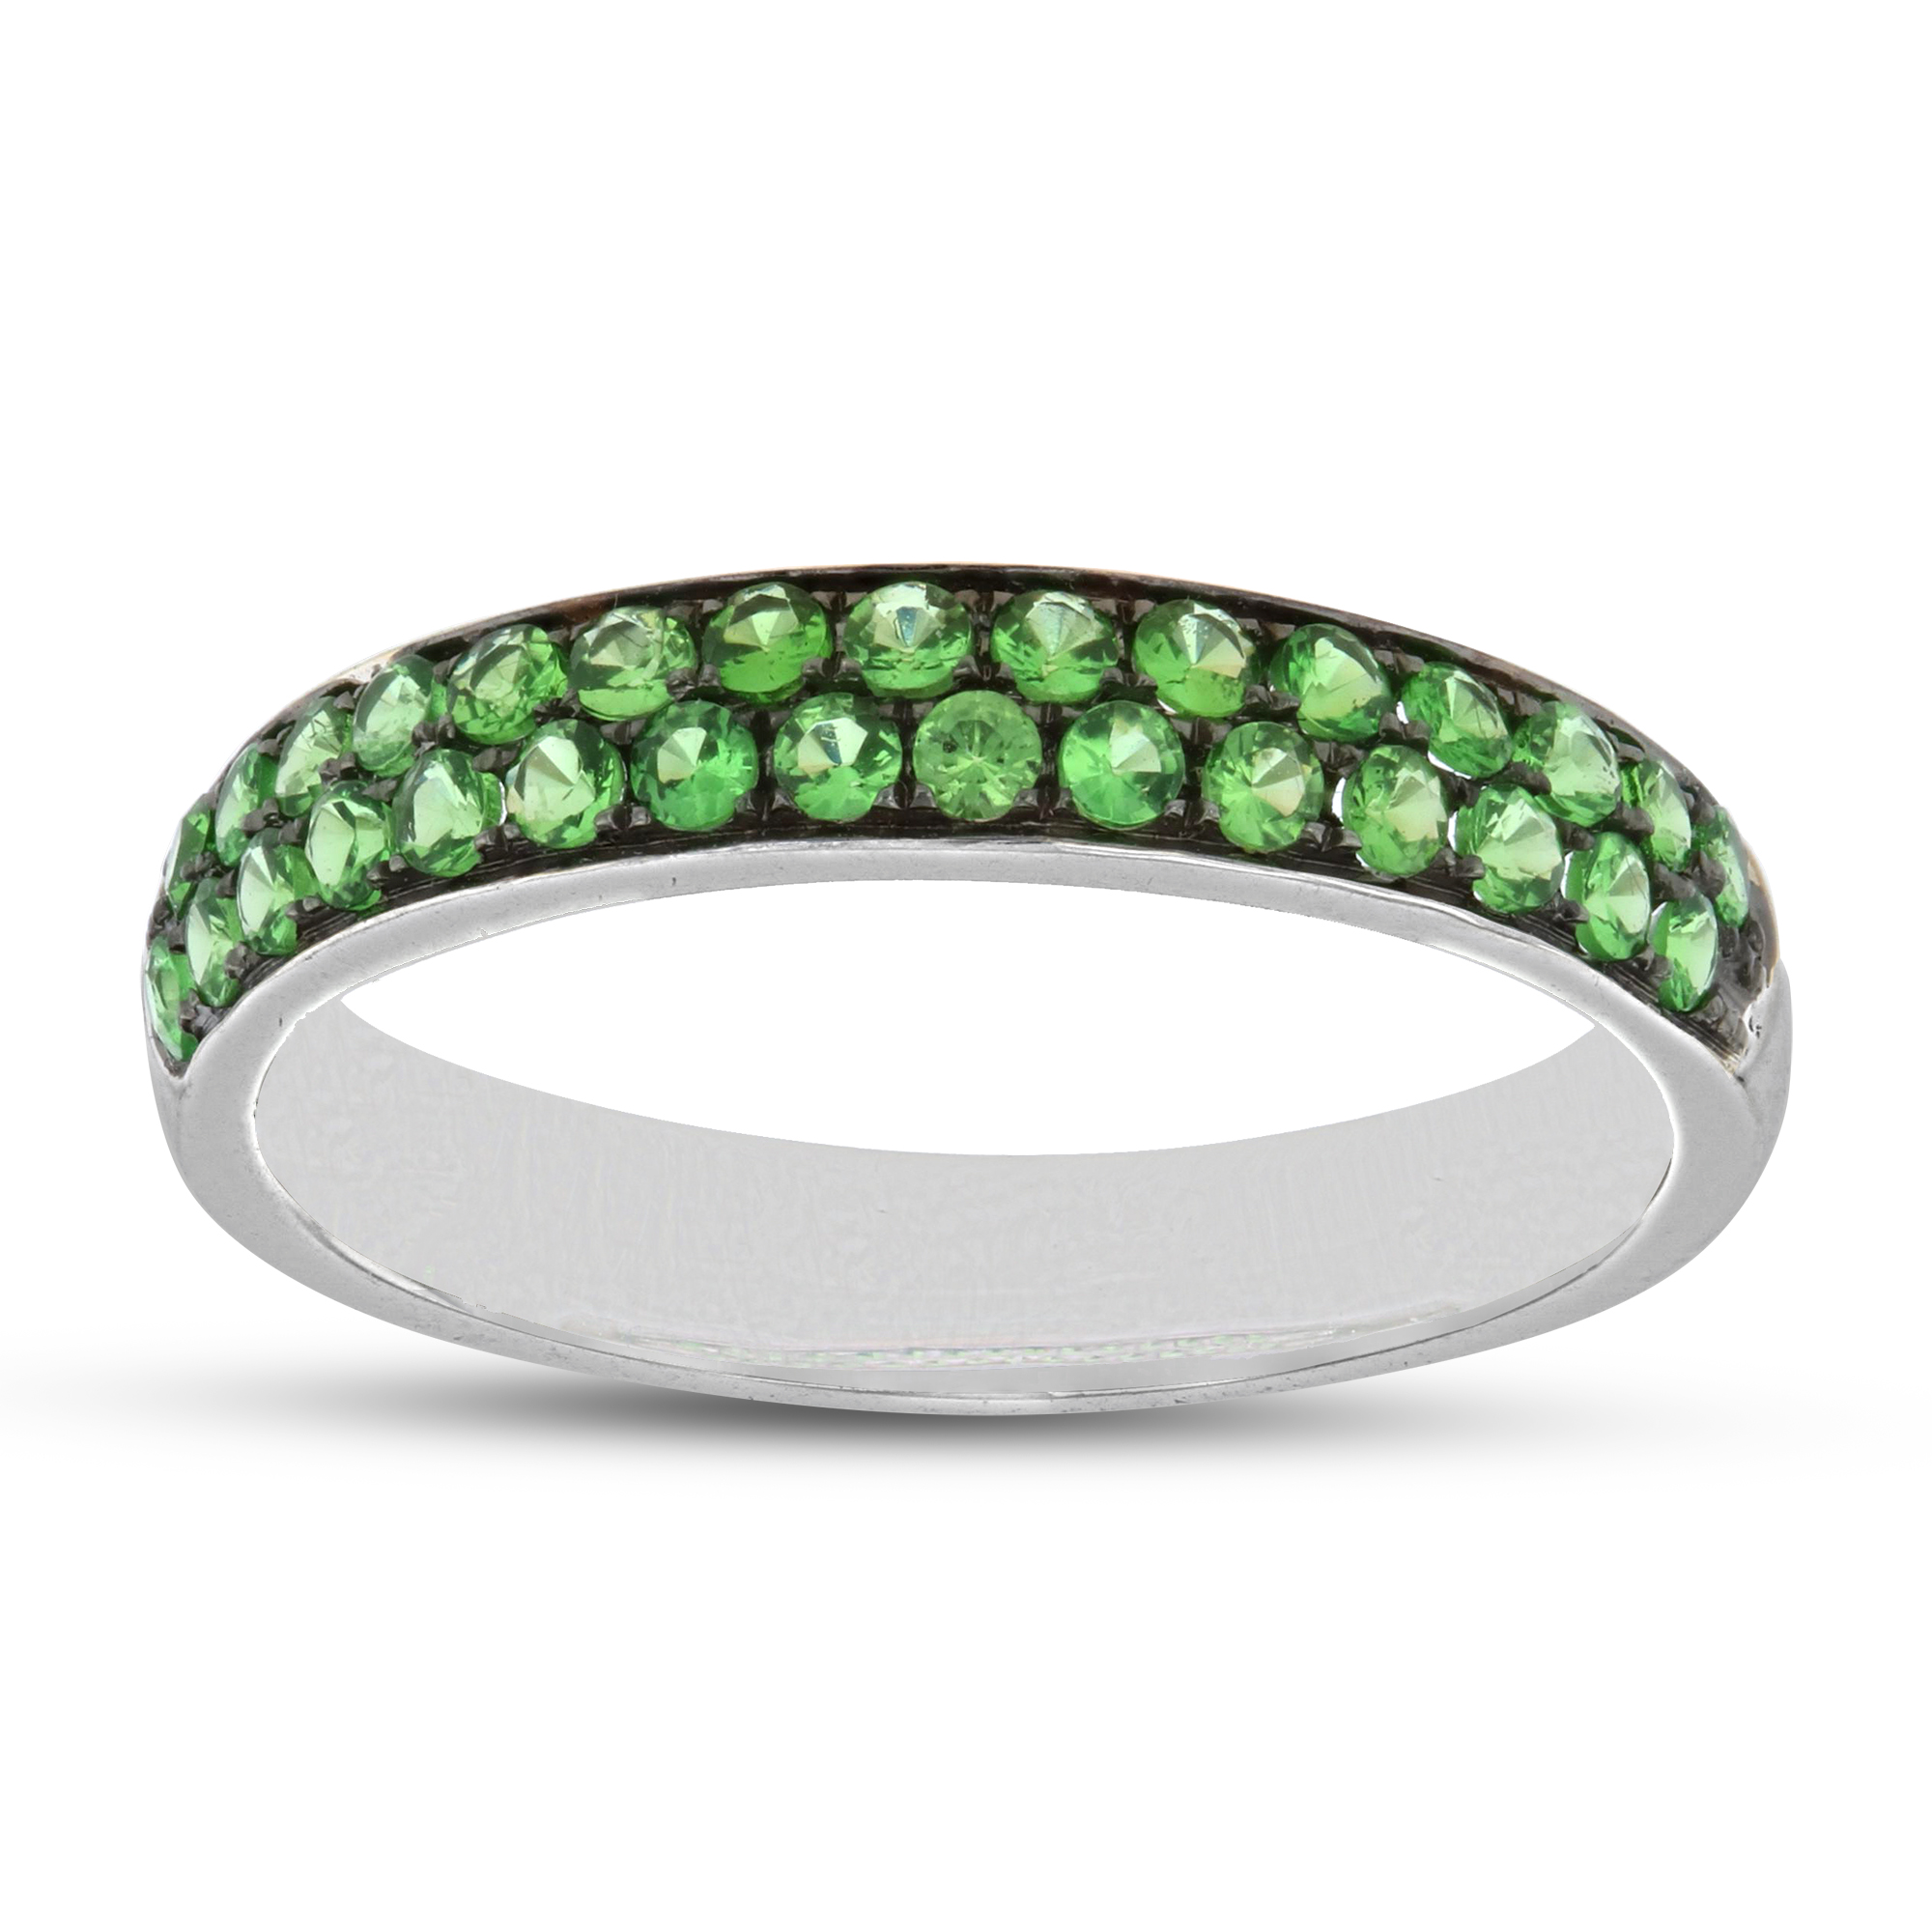 View 0.53ctw Tsavorite Band in 18k Gold